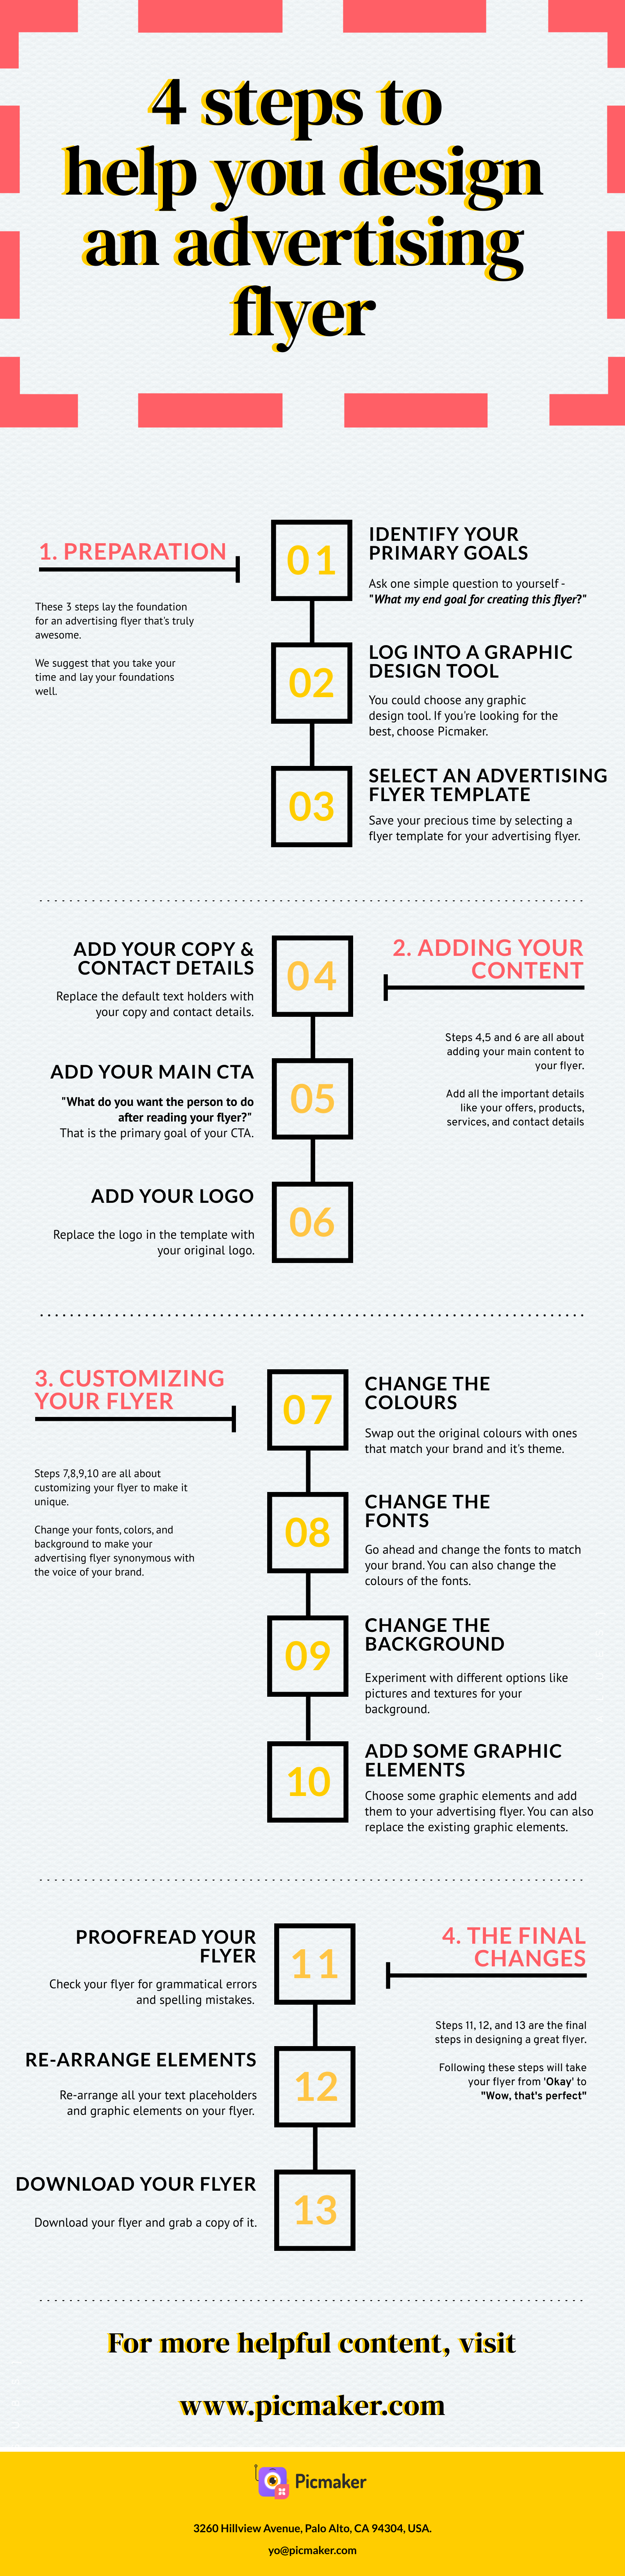 How to make an advertising flyer? (infographic) - Picmaker